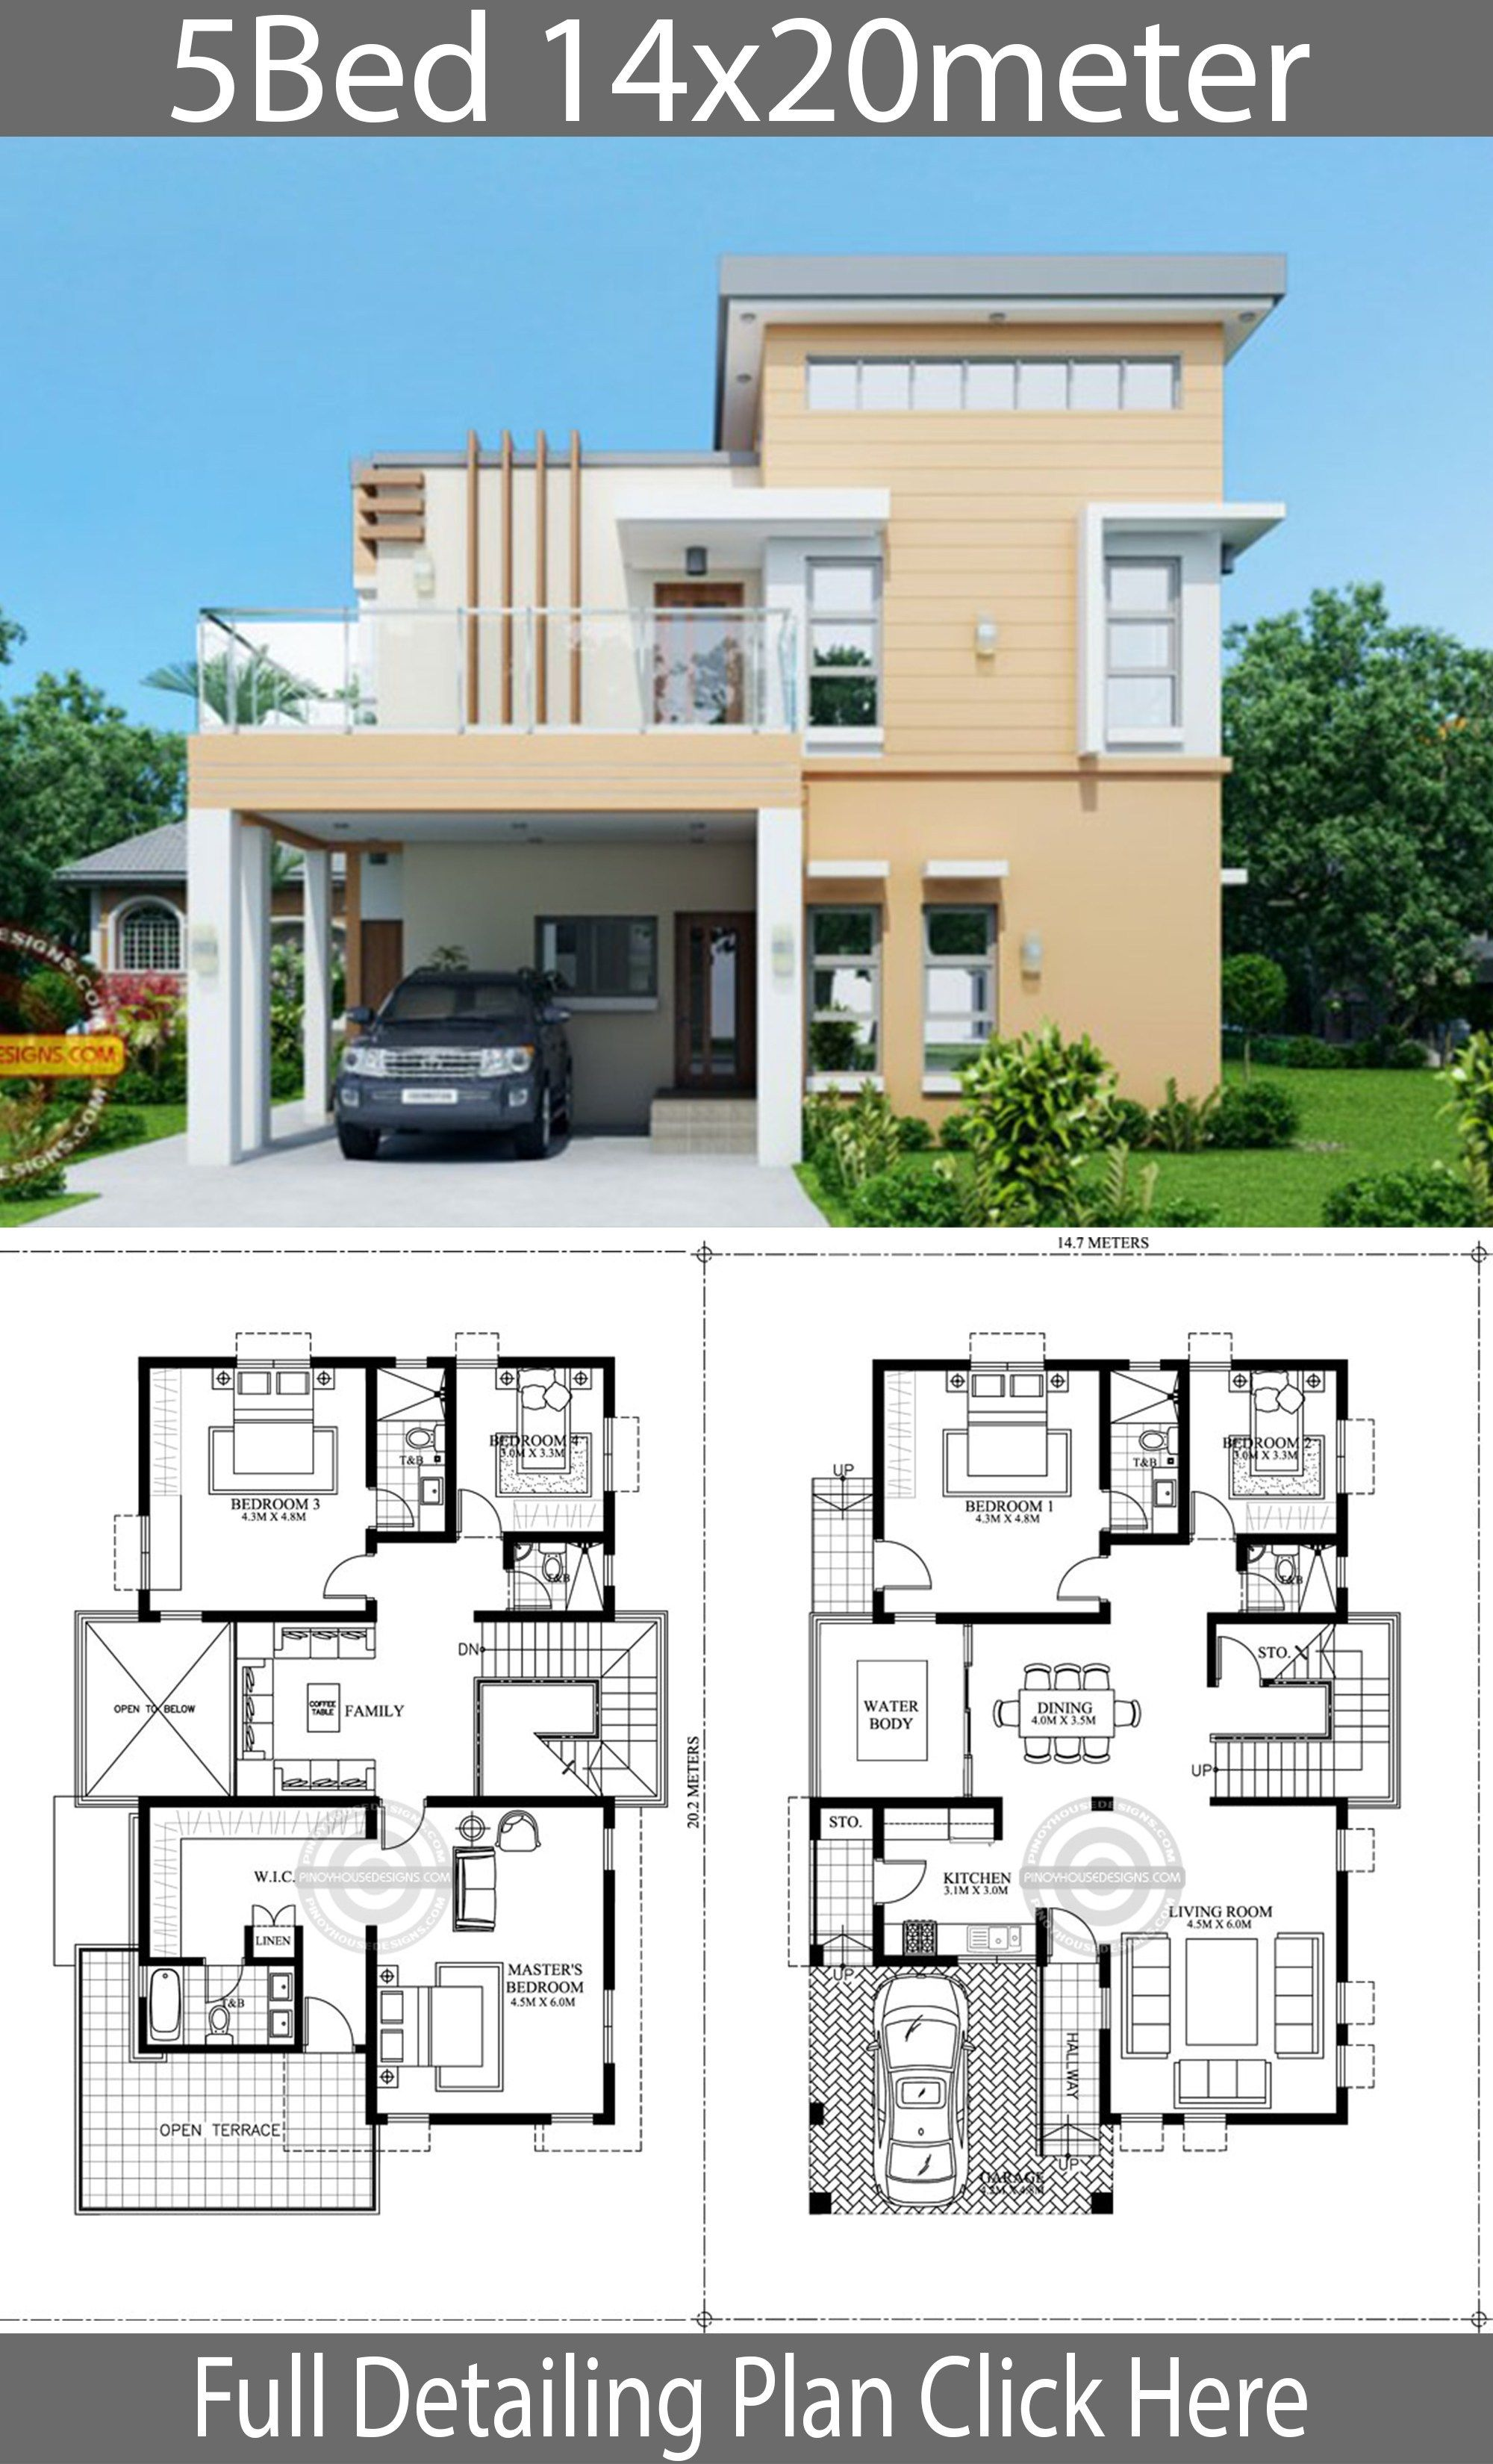 Home Design Plan 14x20m With 5 Bedrooms Home Design With Plan House Plans Duplex House Design Model House Plan